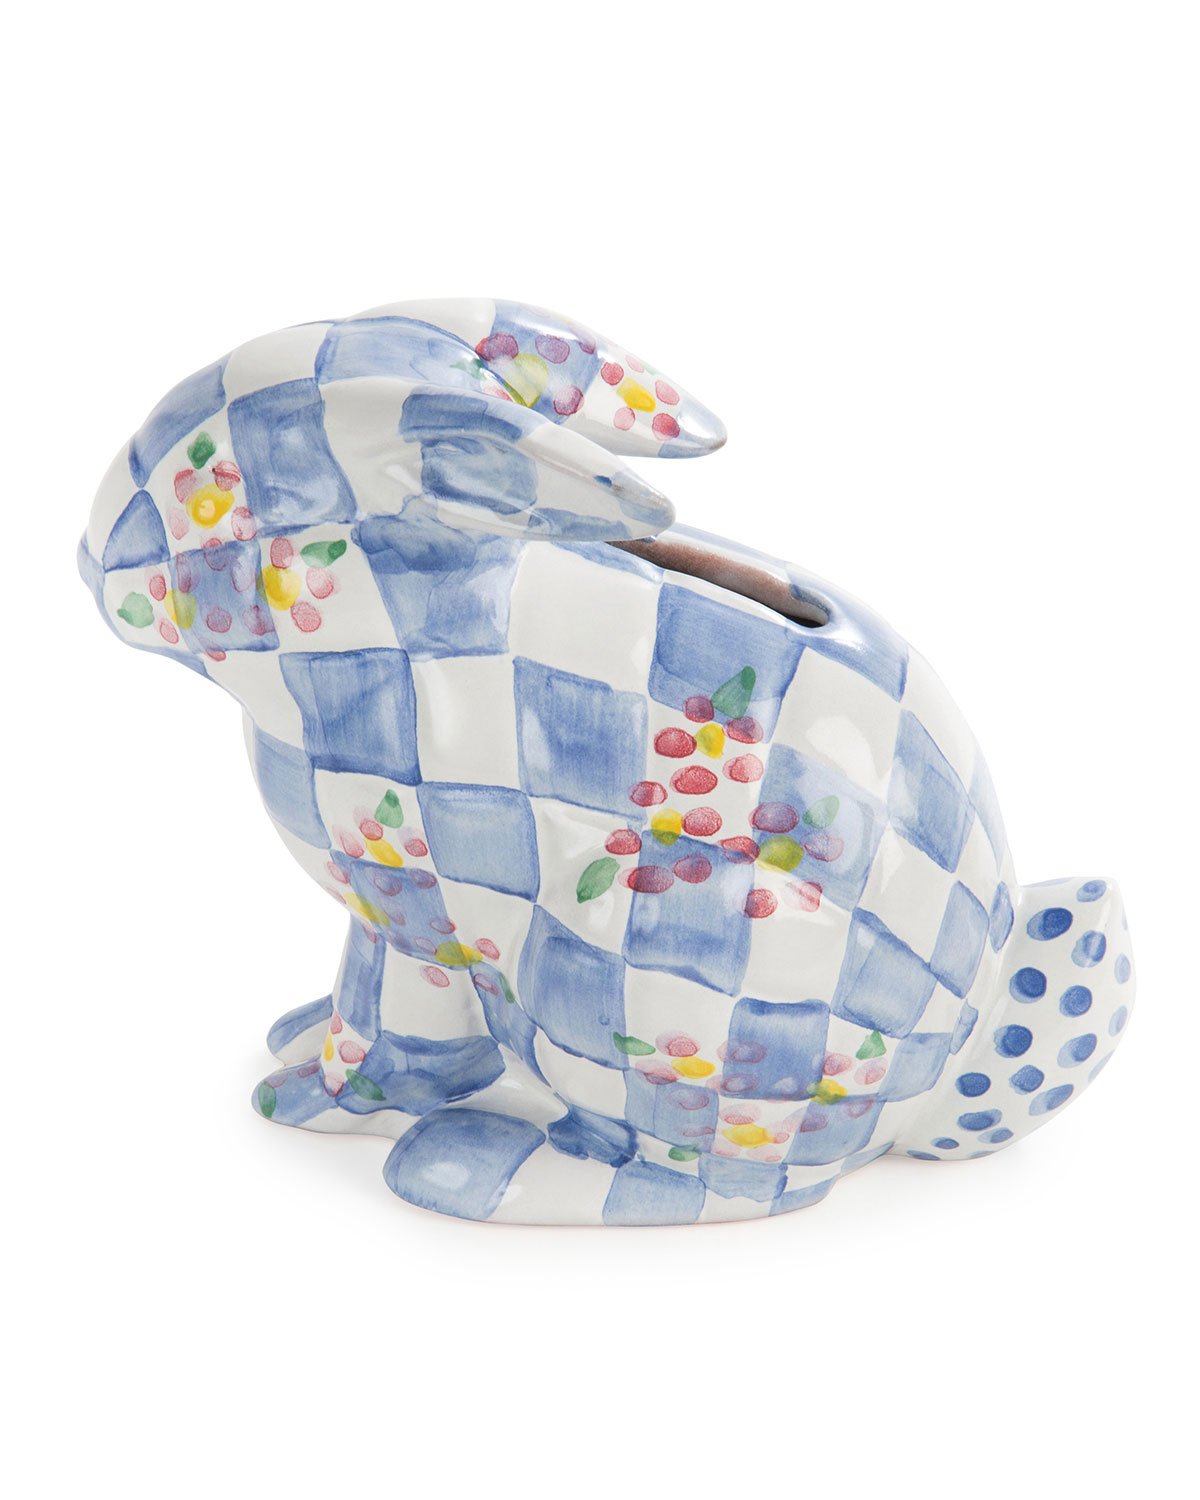 Handcrafted Bunny Bank, Blue